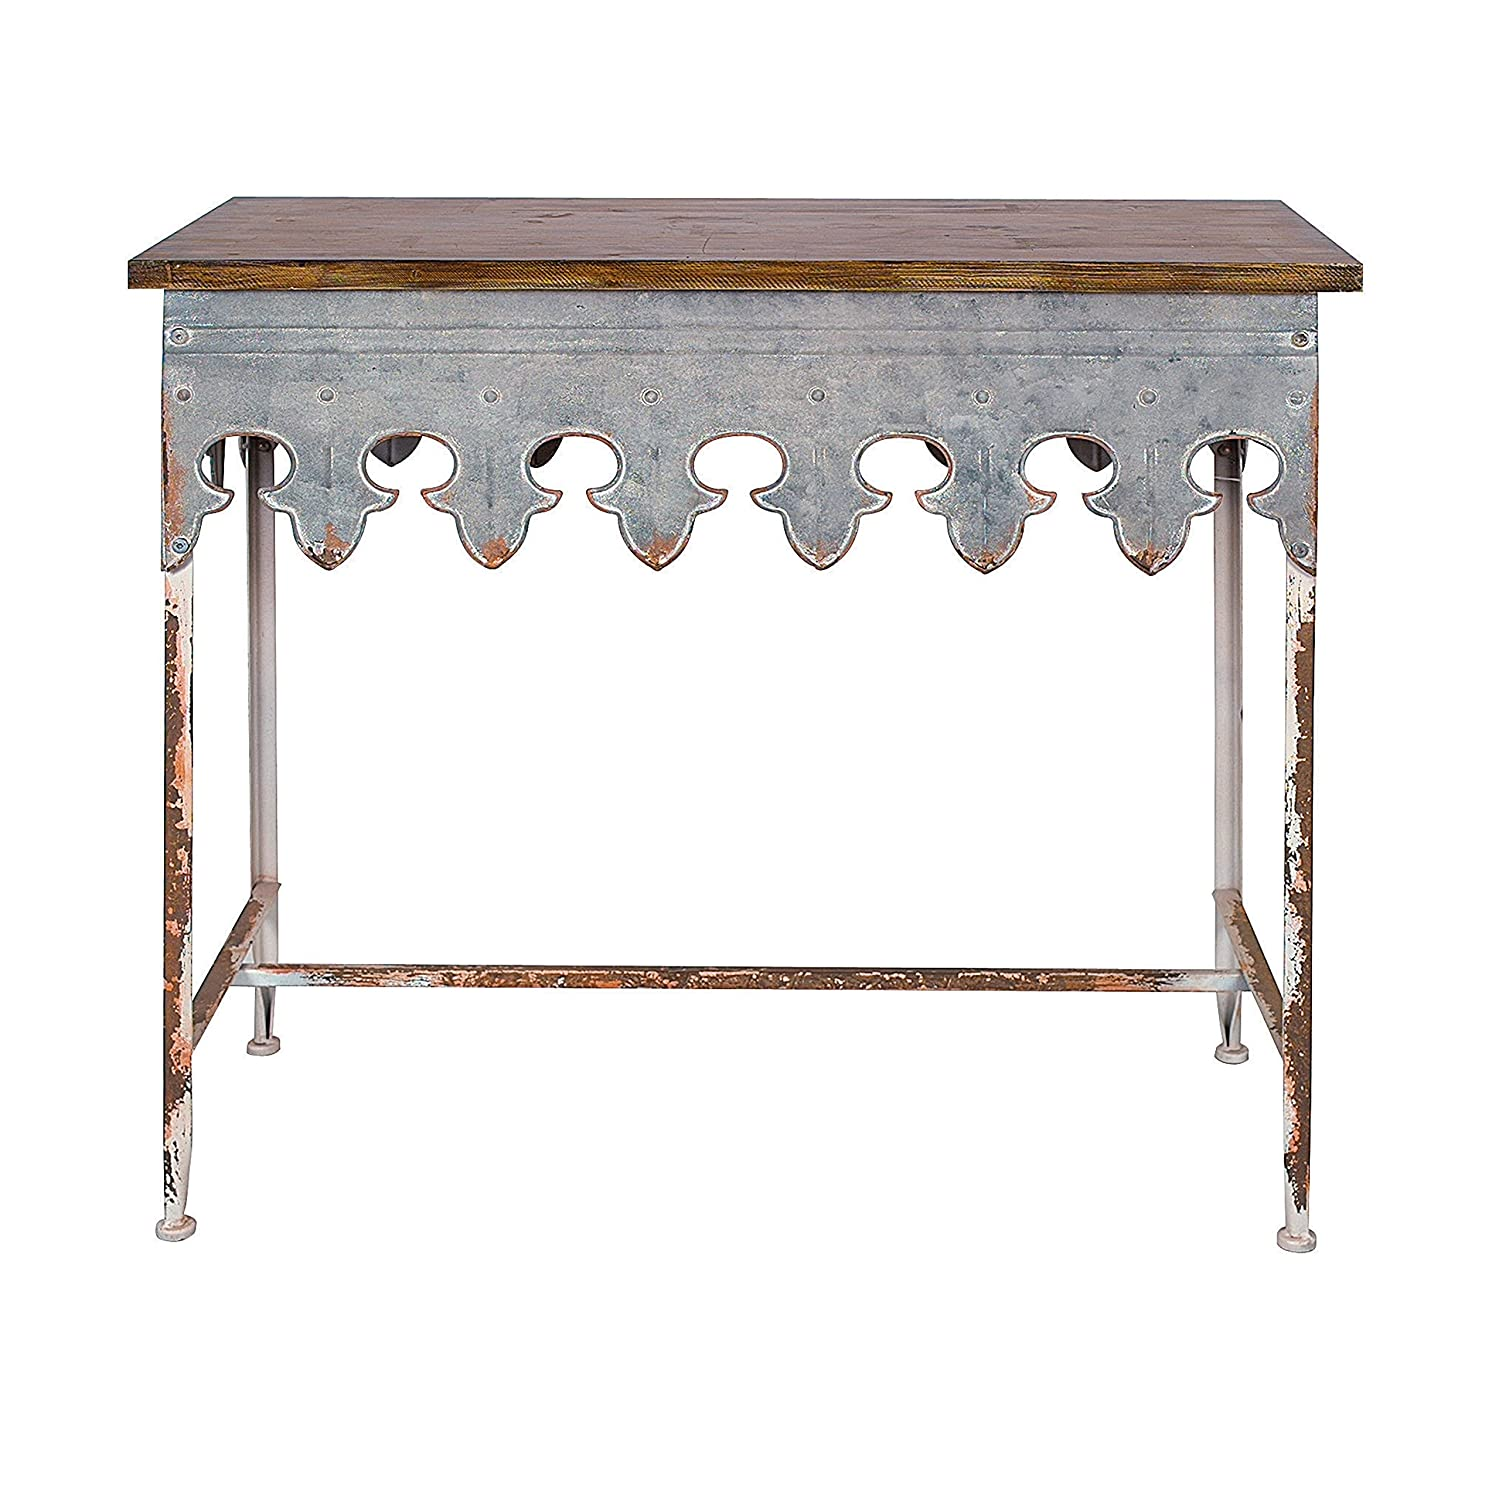 Distressed zinc rustic farmhouse style table.